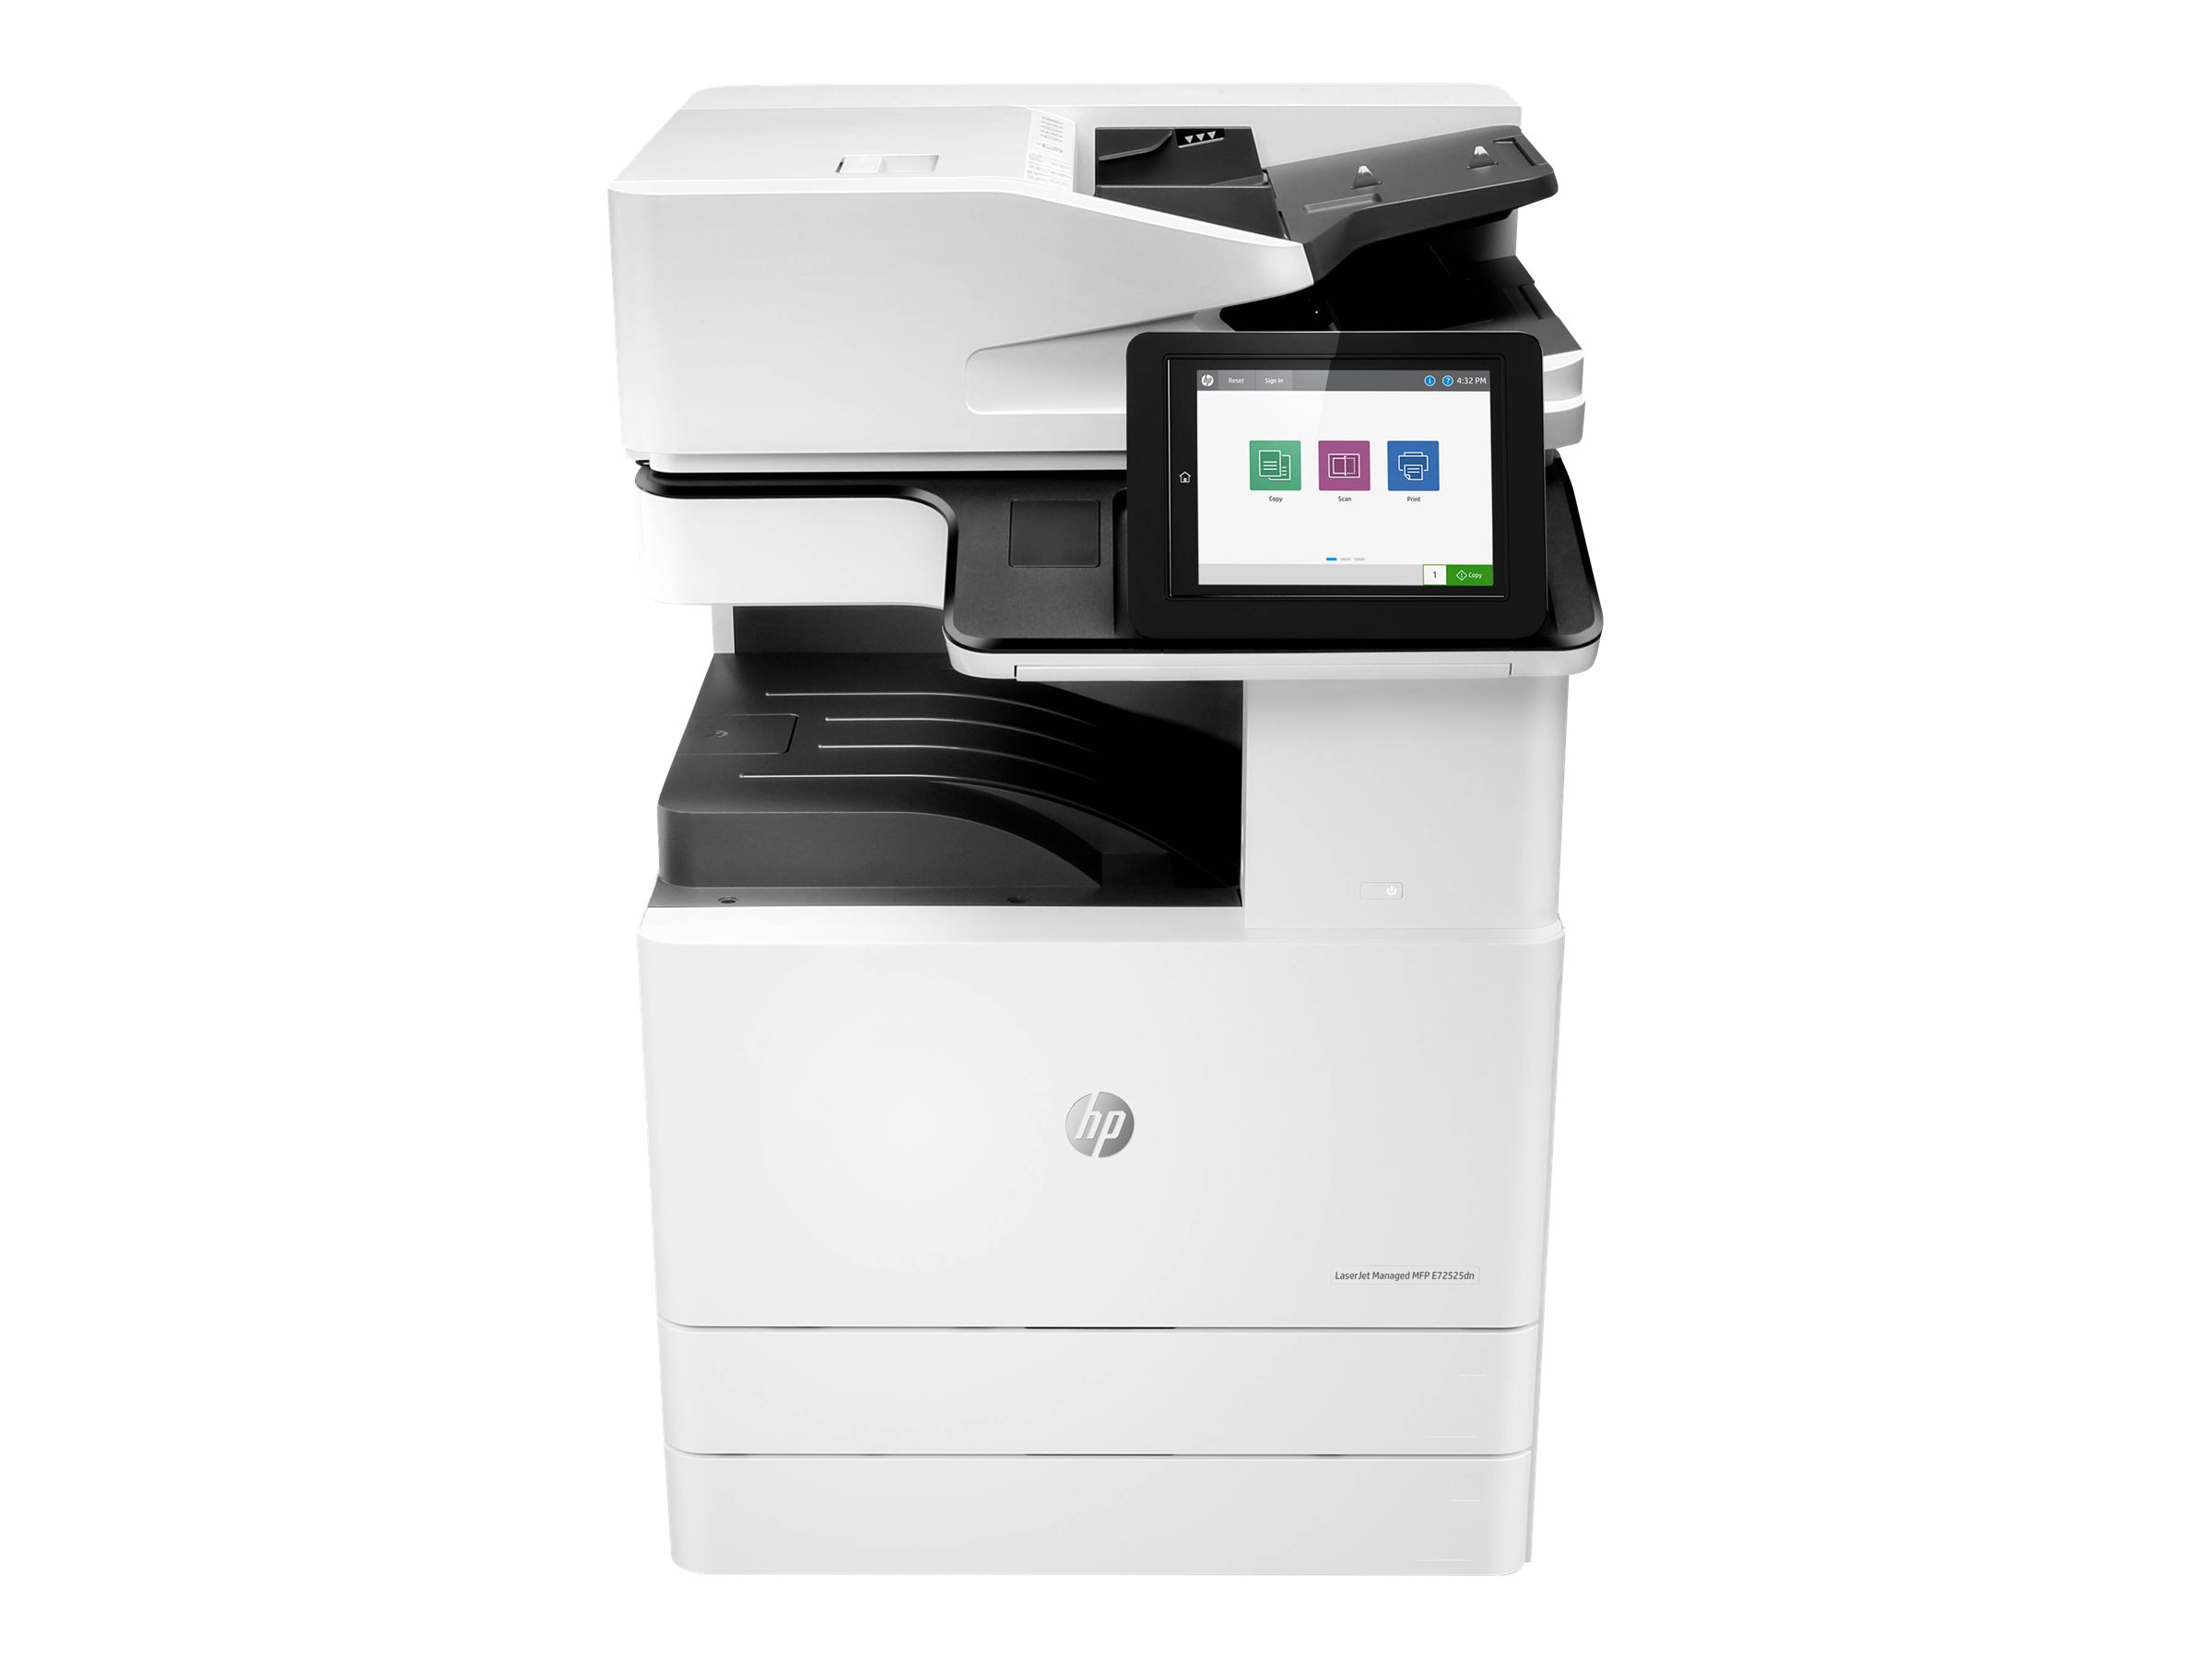 Copieur LaserJet Managed Flow MFP HP E82550z - vitesse 50ppm vue avant